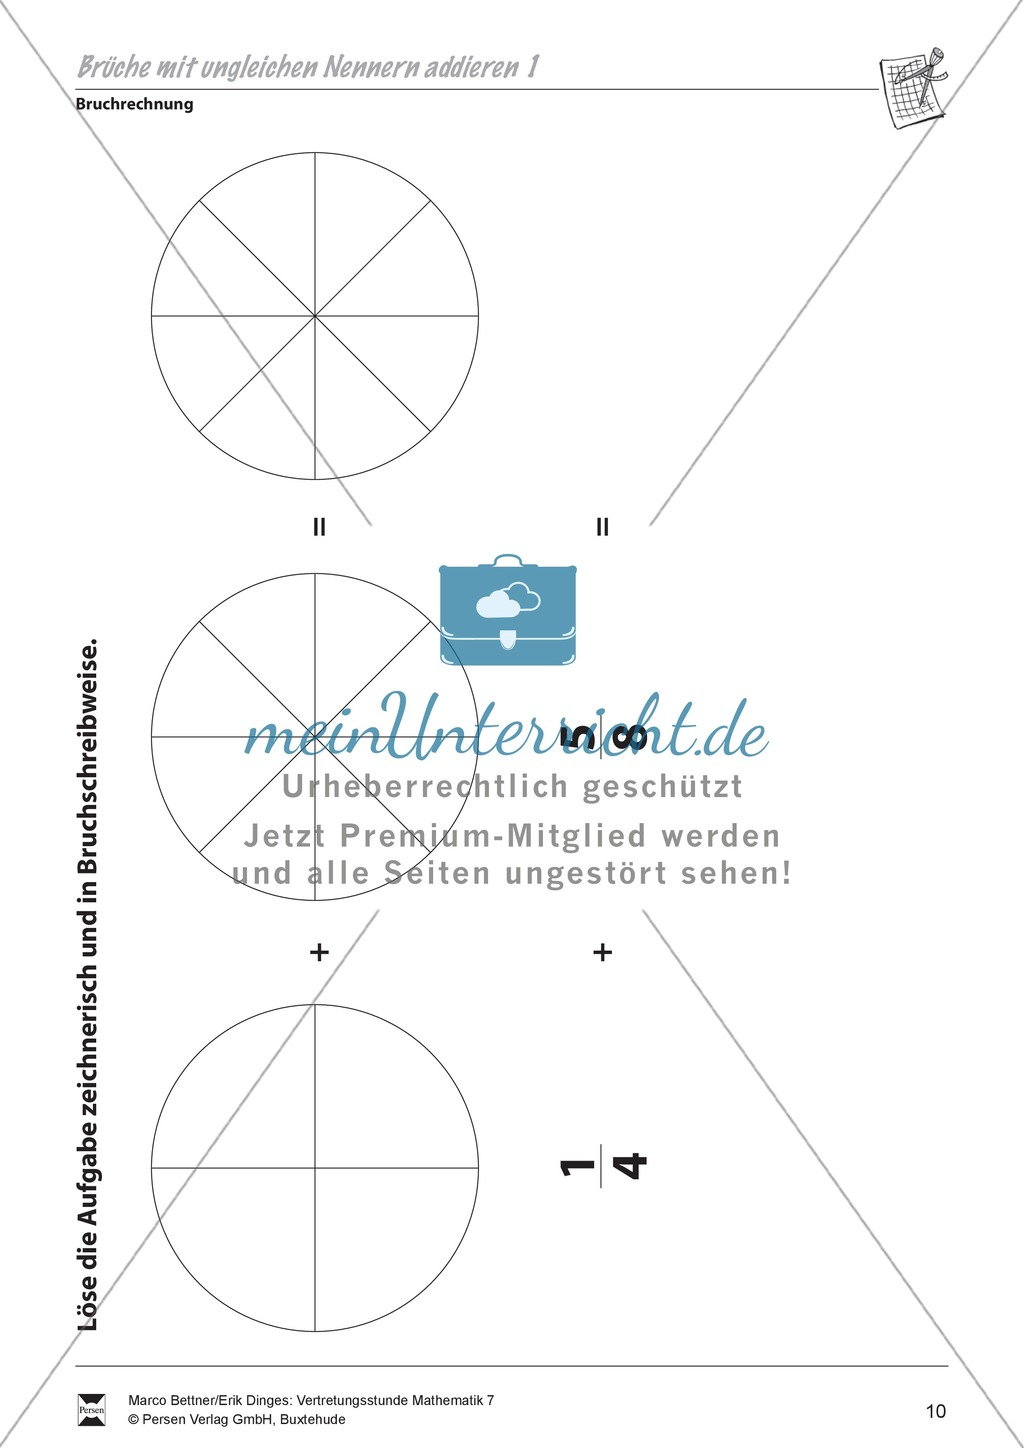 bruchrechnung br che mit ungleichen nennern addieren. Black Bedroom Furniture Sets. Home Design Ideas